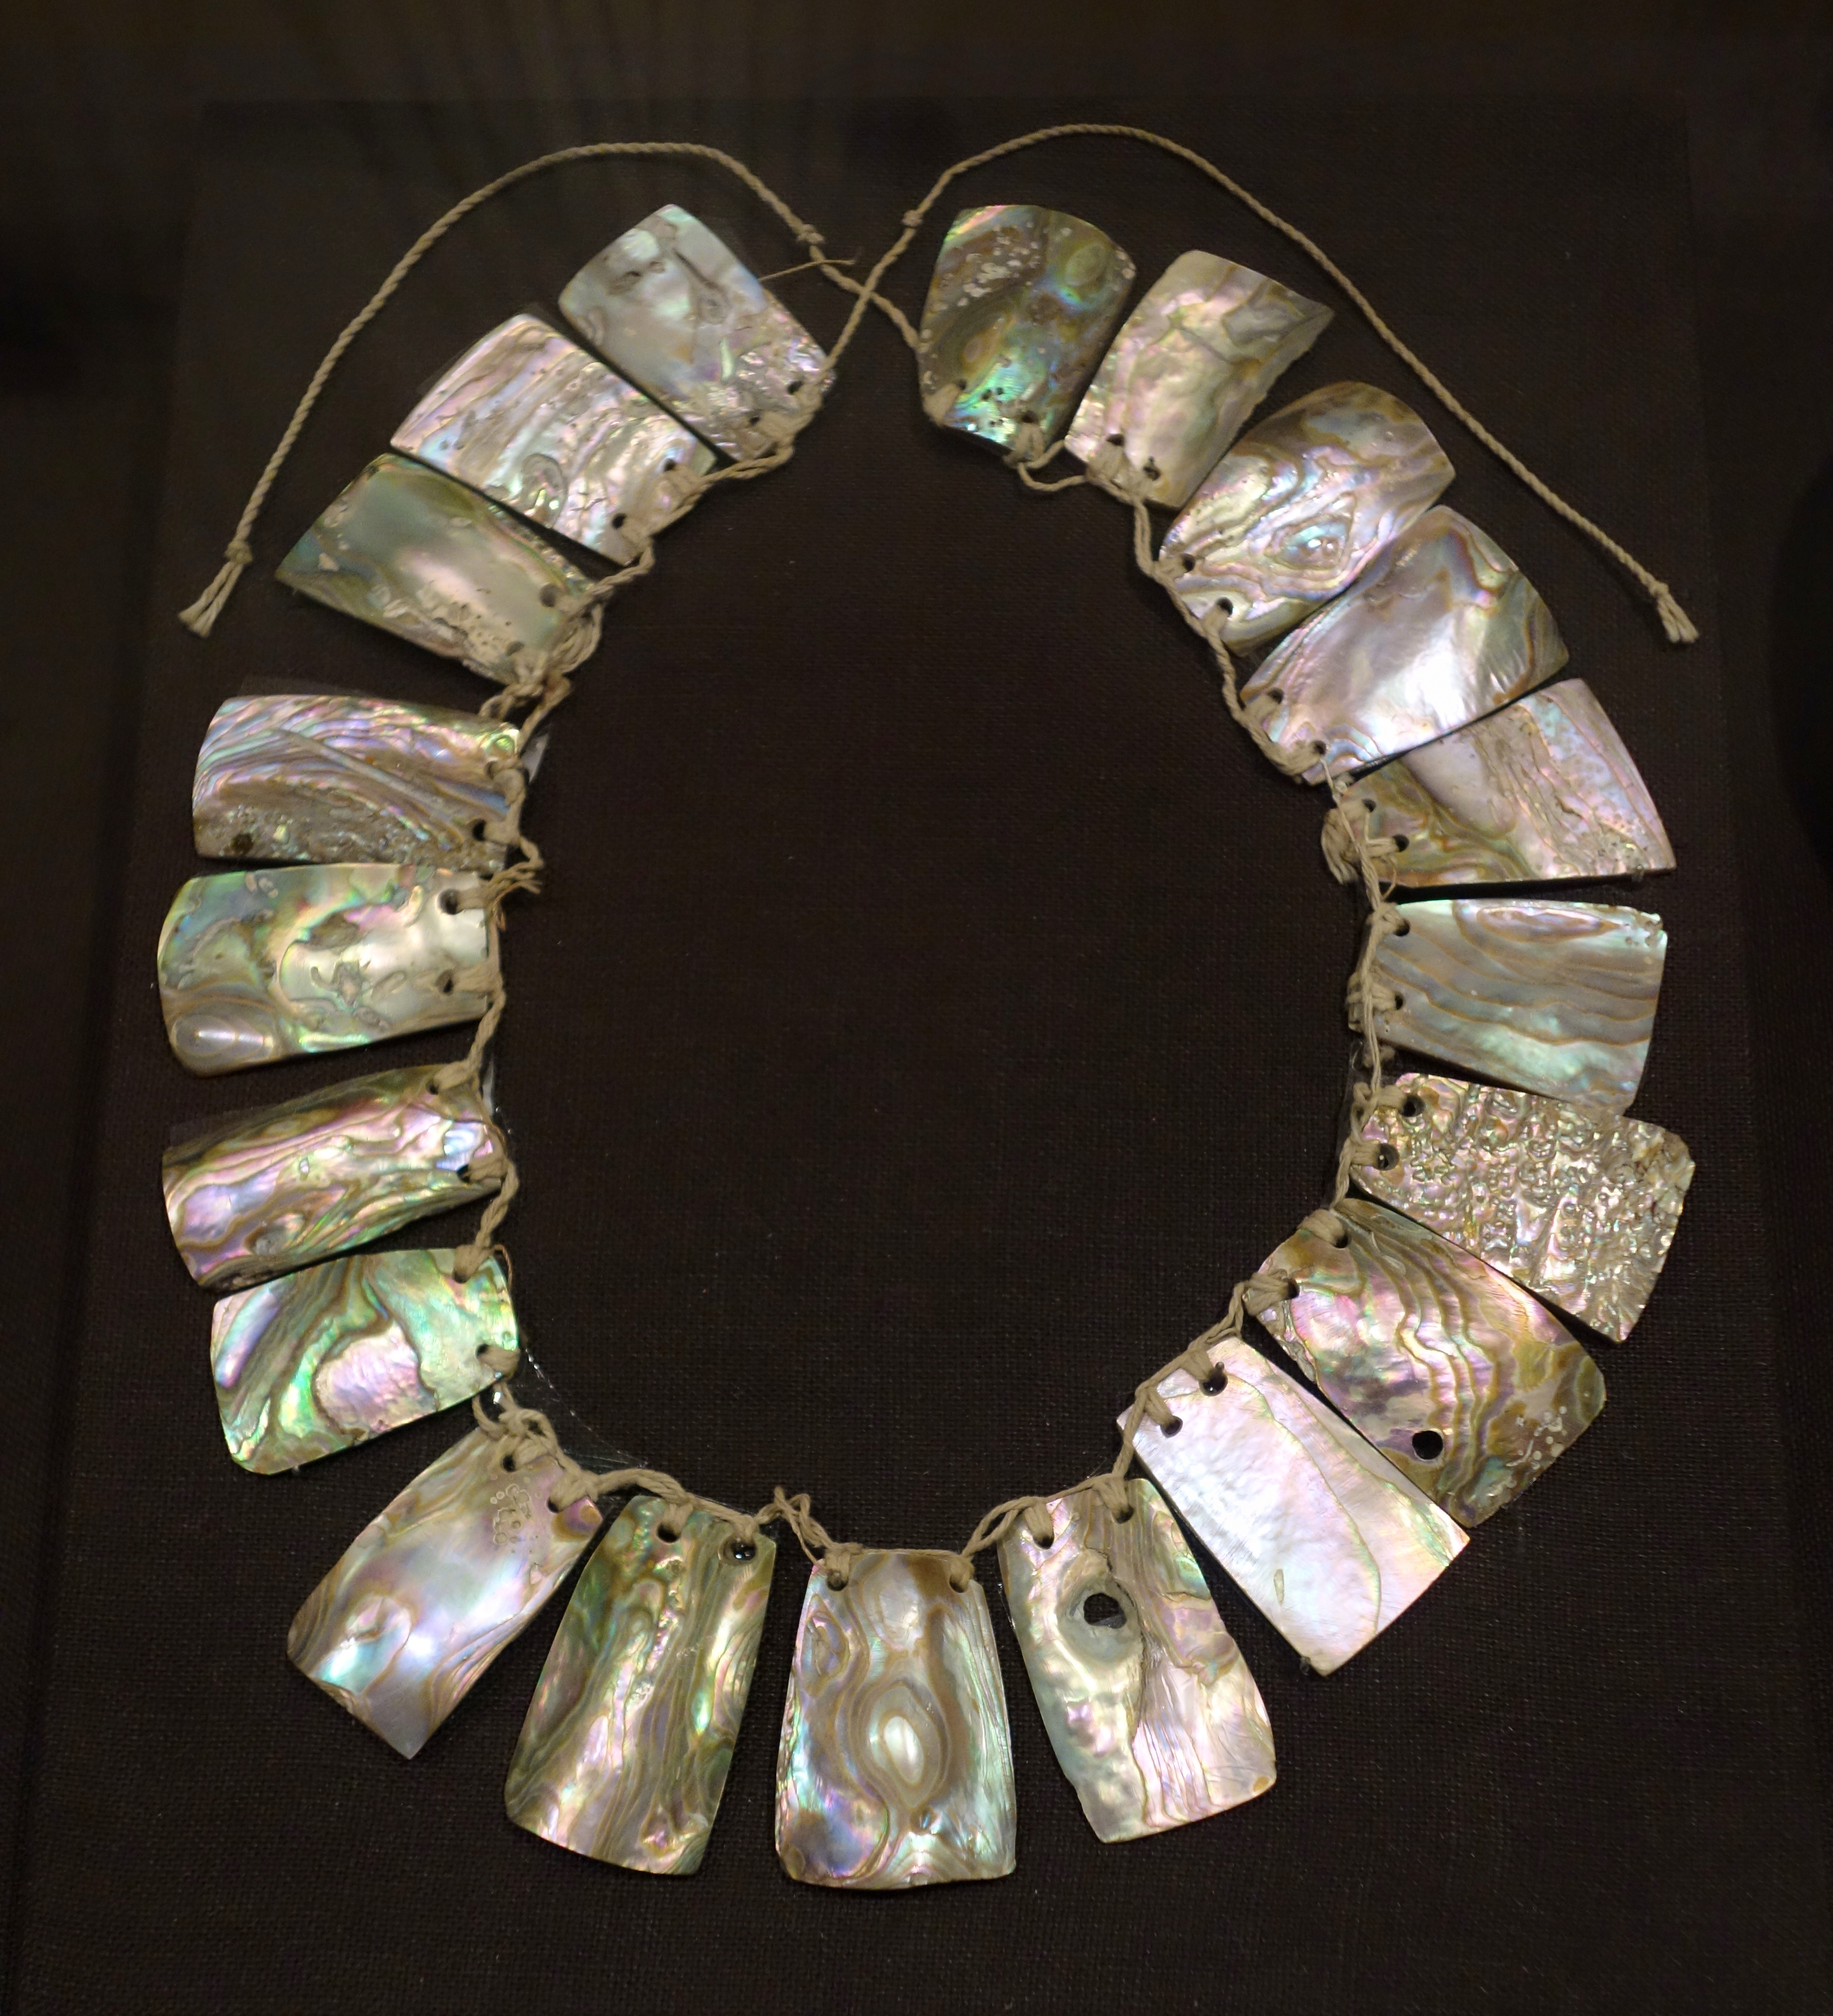 Exhibition Shell Necklace : File abalone necklace miwok oakland museum of